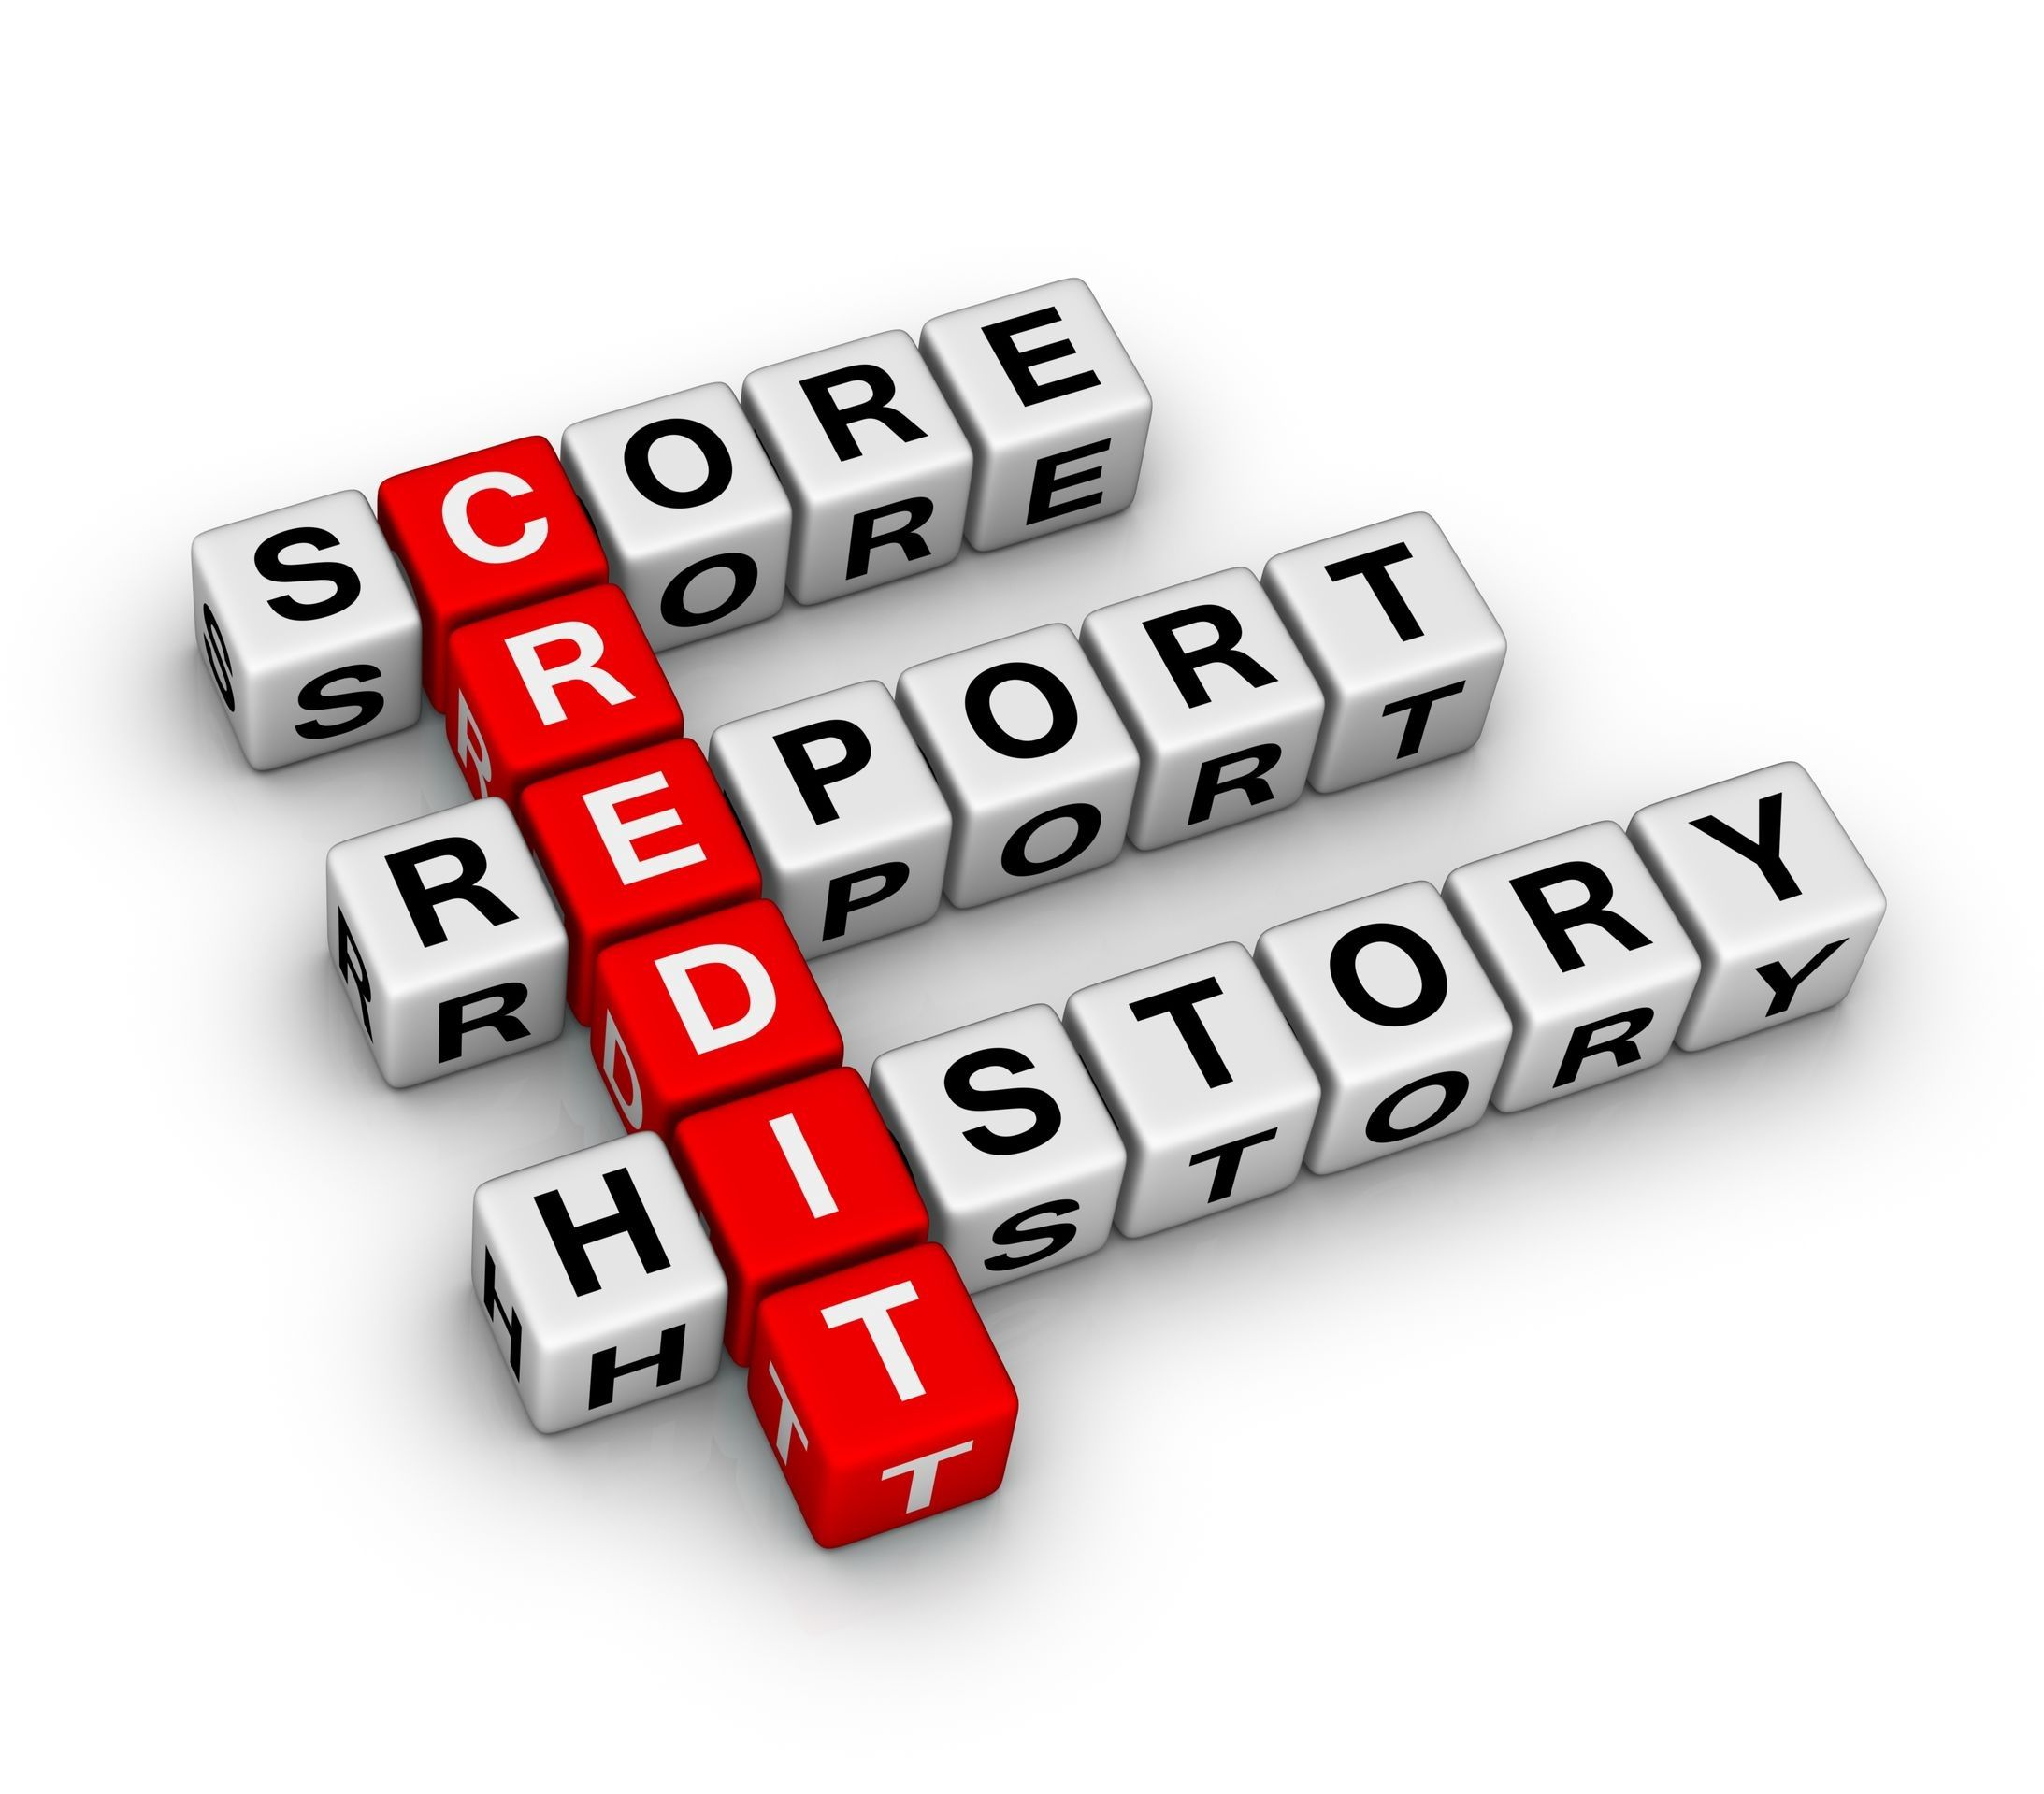 Credit Scores What are they? Credit repair, Improve